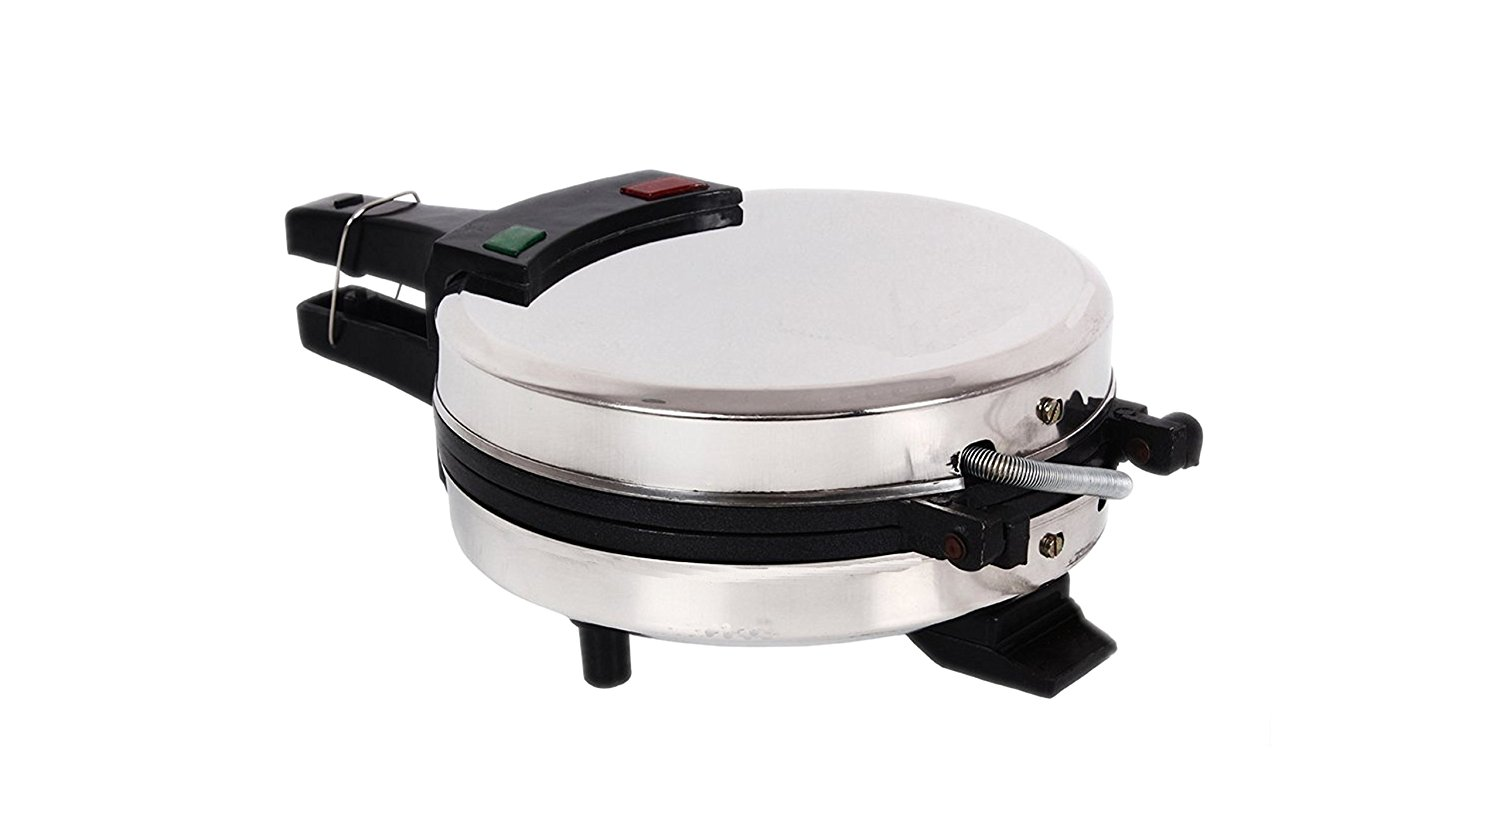 Top 10 Best Roti Maker In India Reviews & Price Comparison 2018